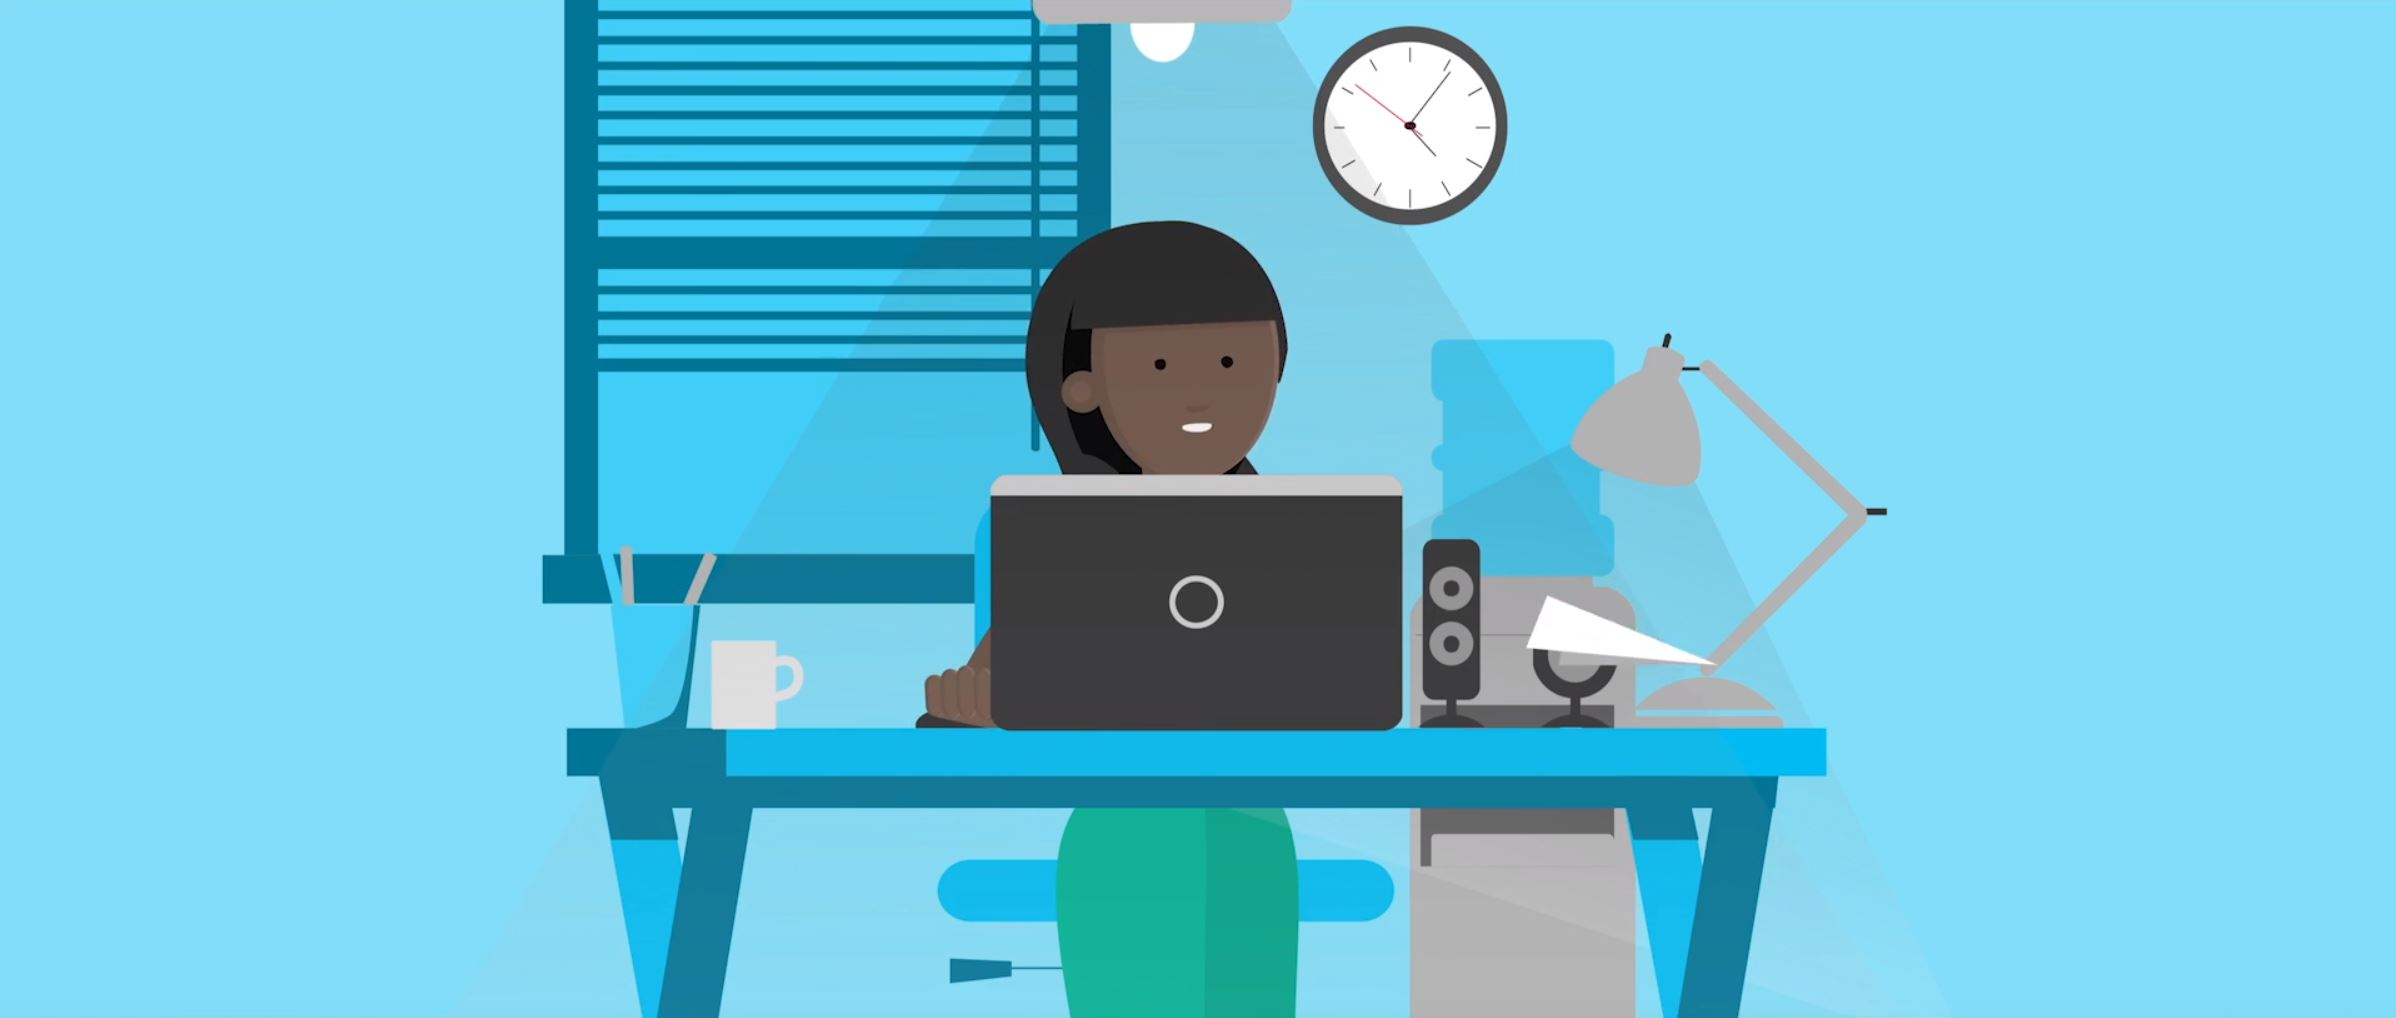 2D character animation image 3 for Microsoft Innovation - retail project